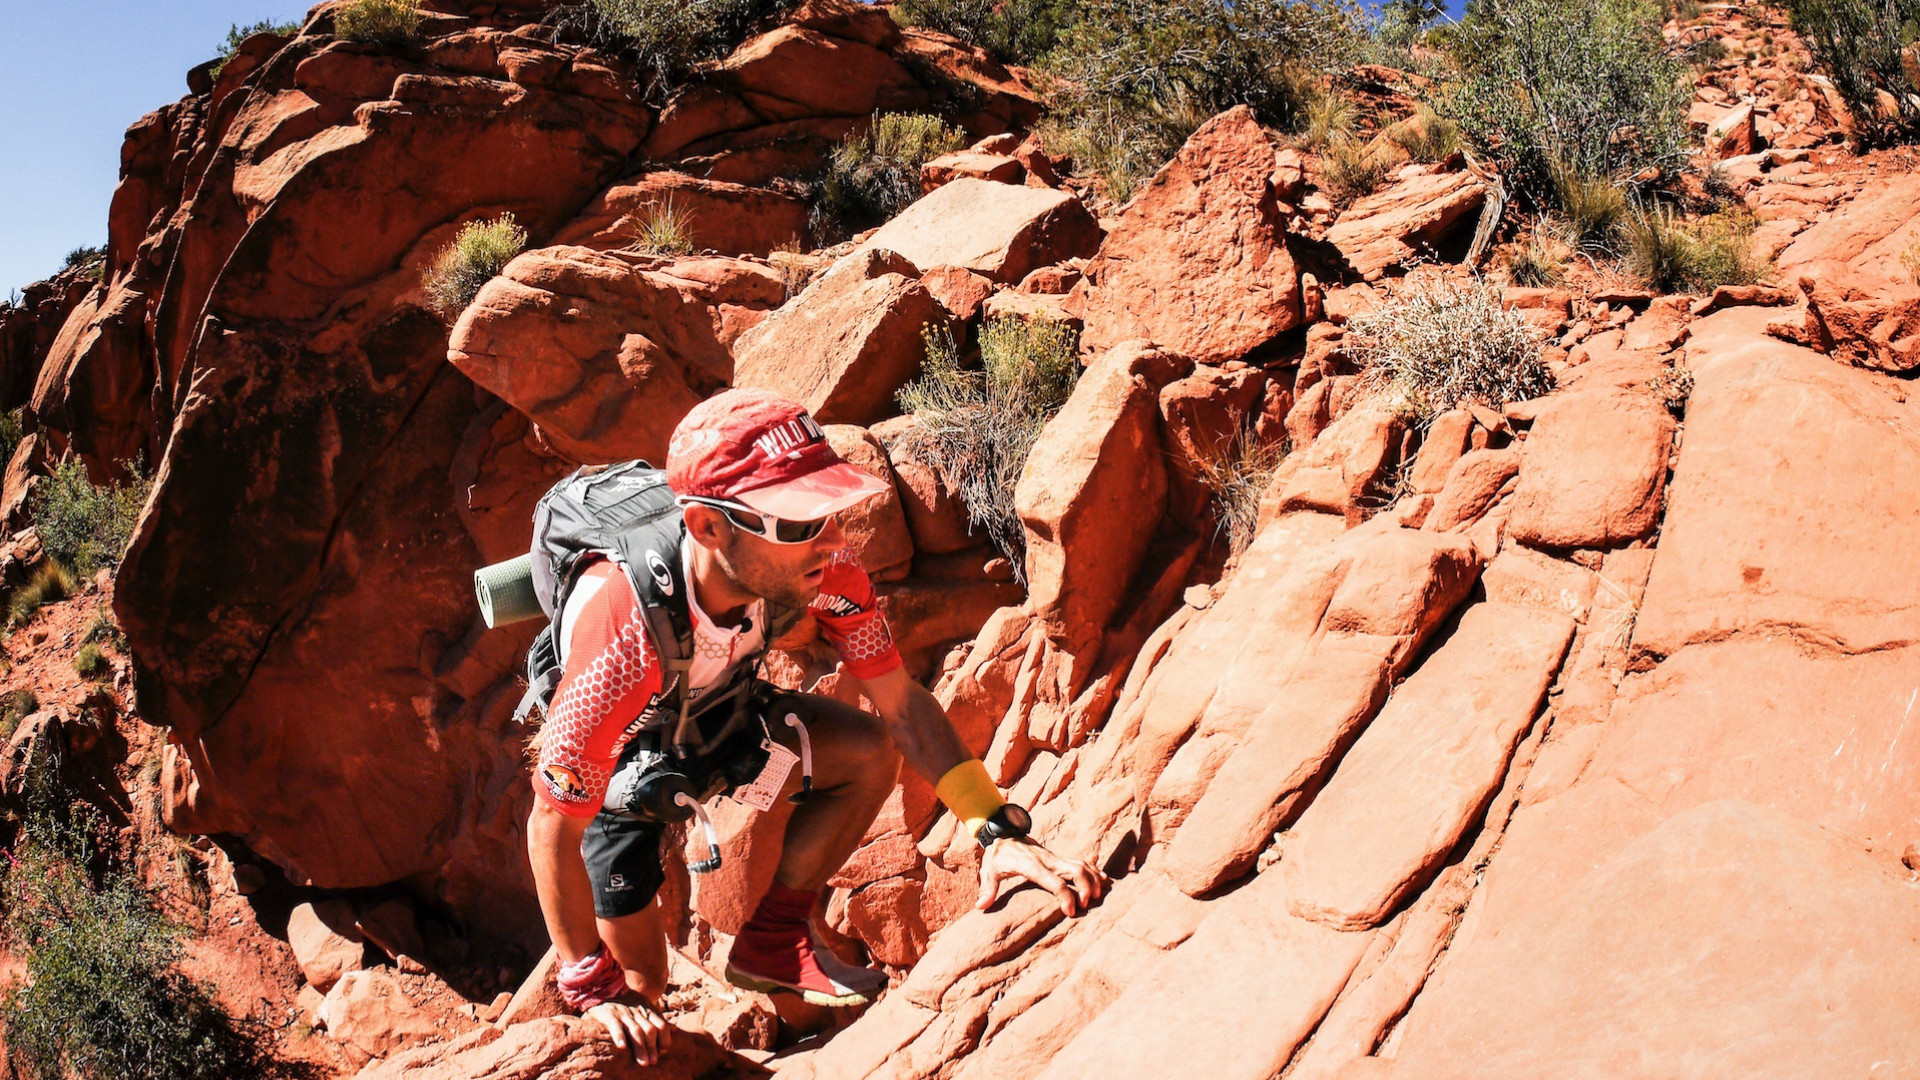 Climbing sandstone on the Grand to Grand run